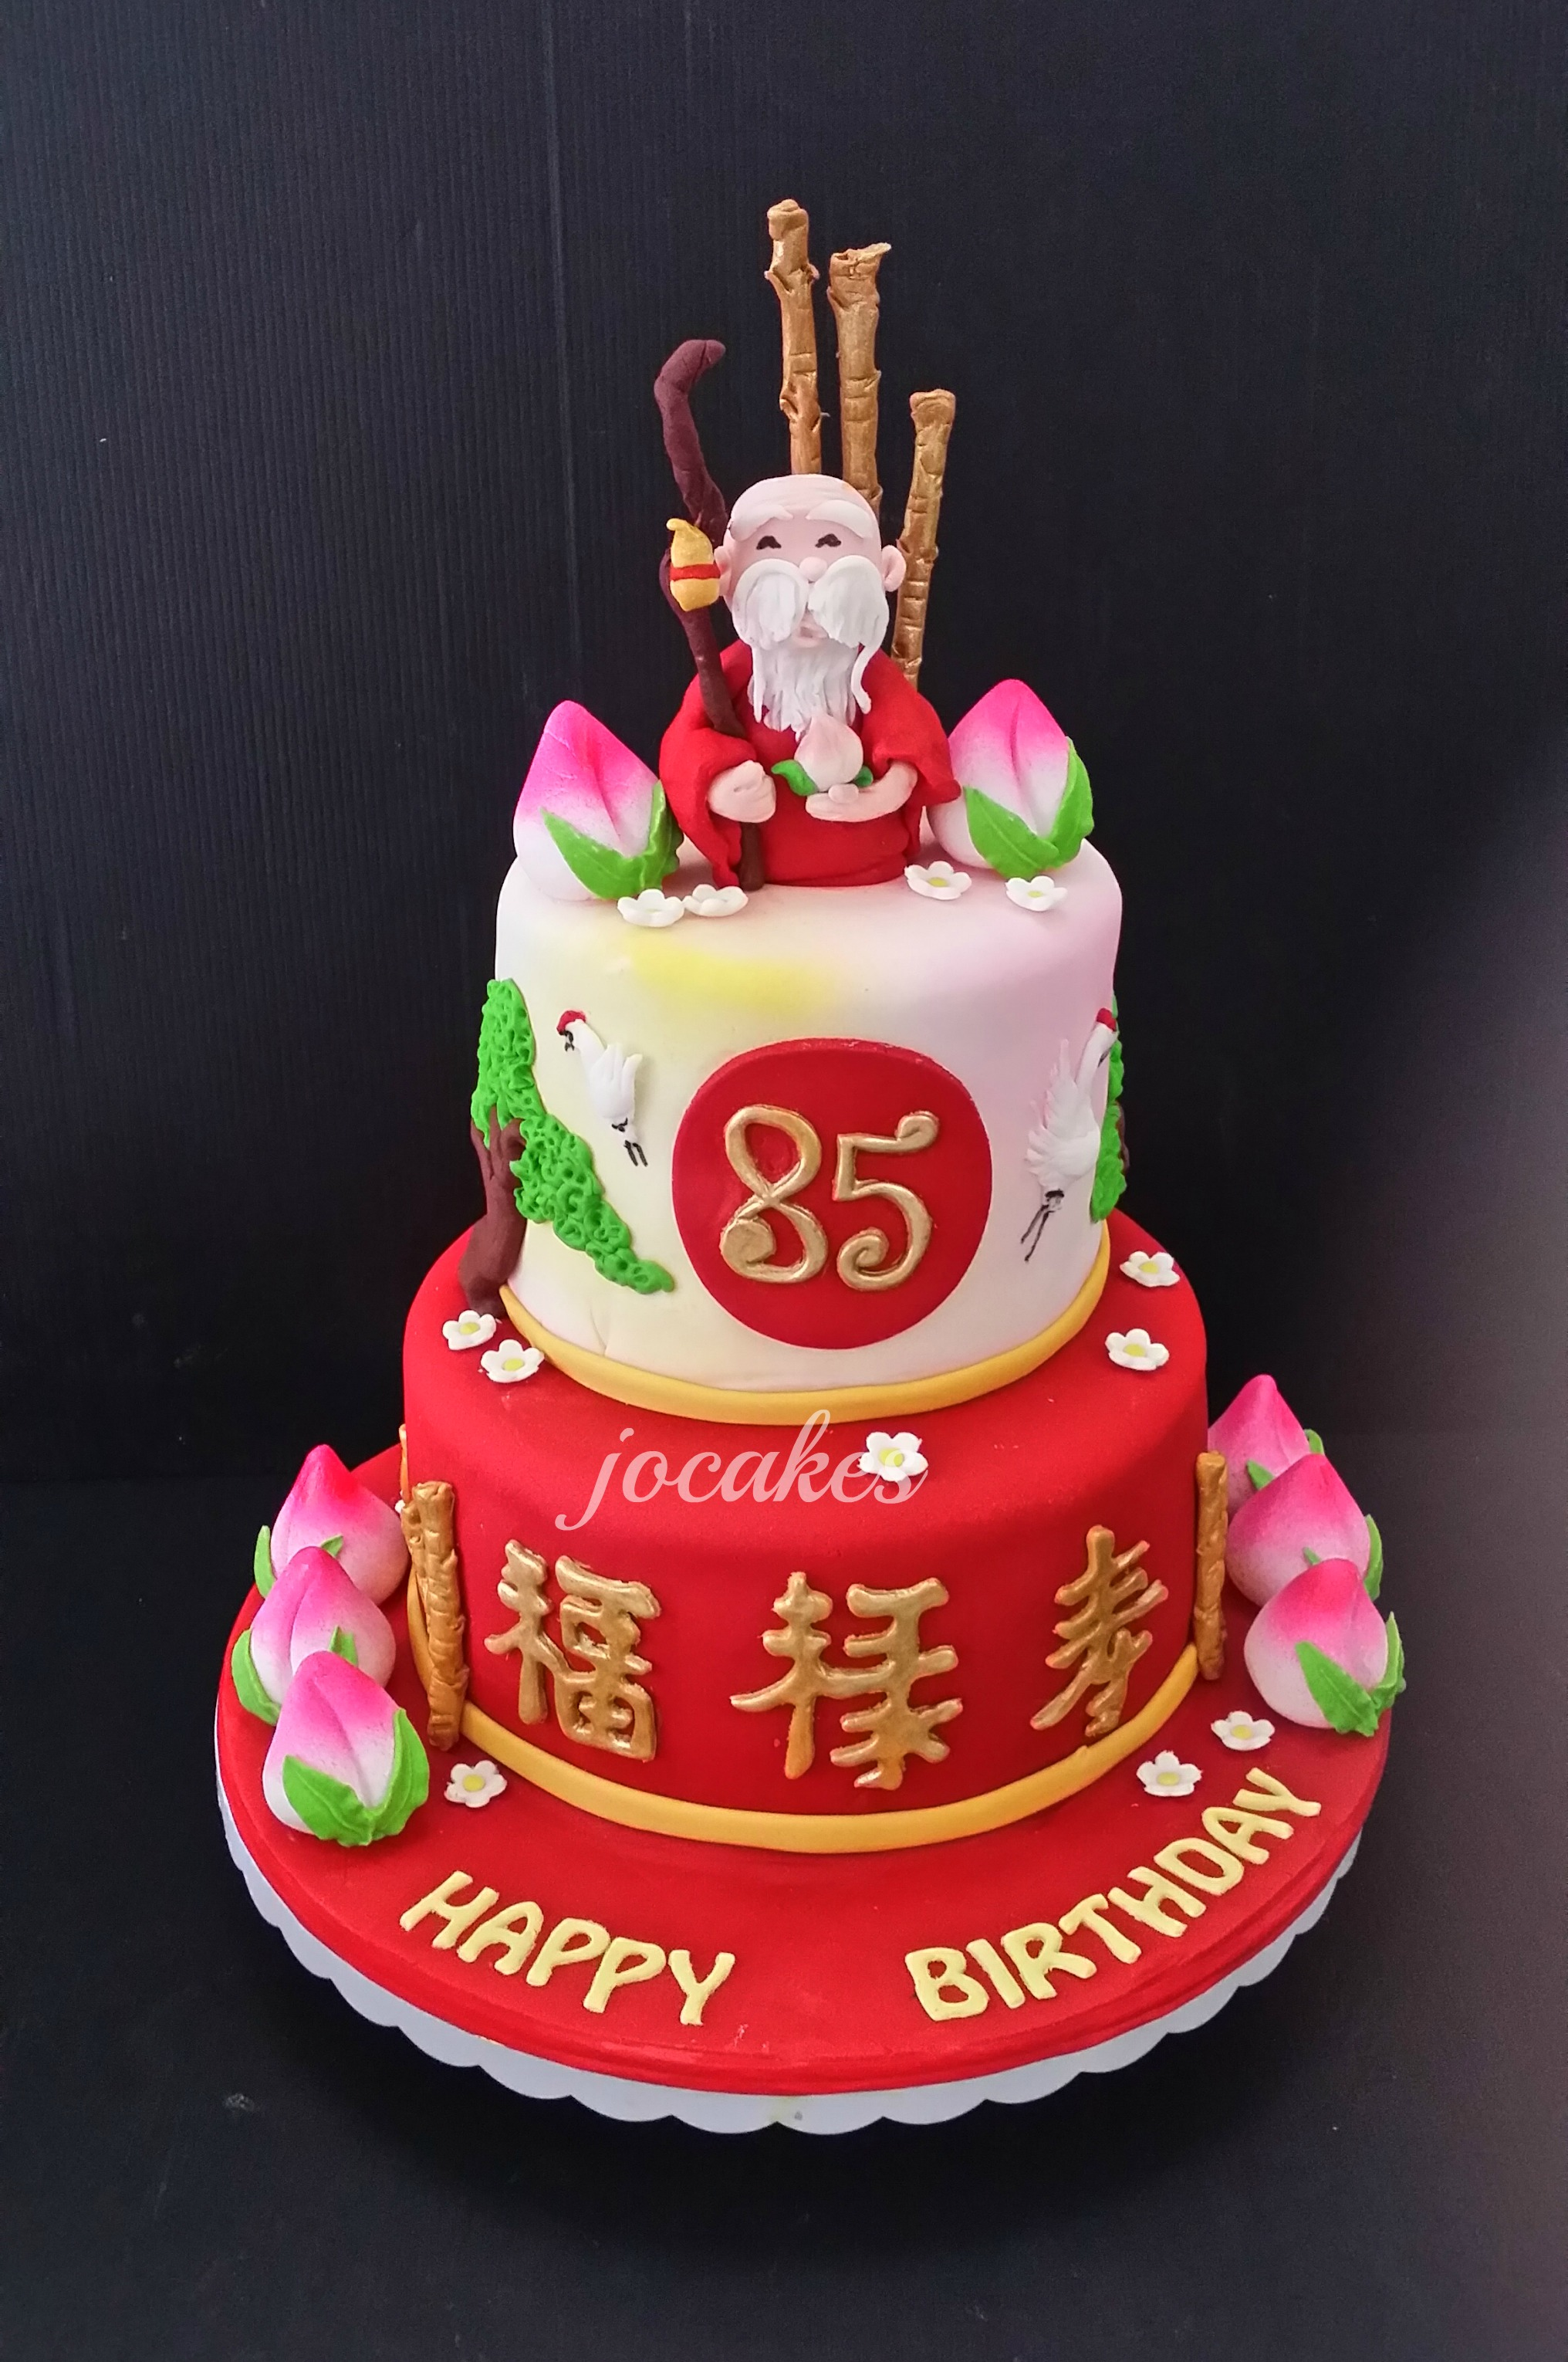 85th Birthday Cake Jocakes